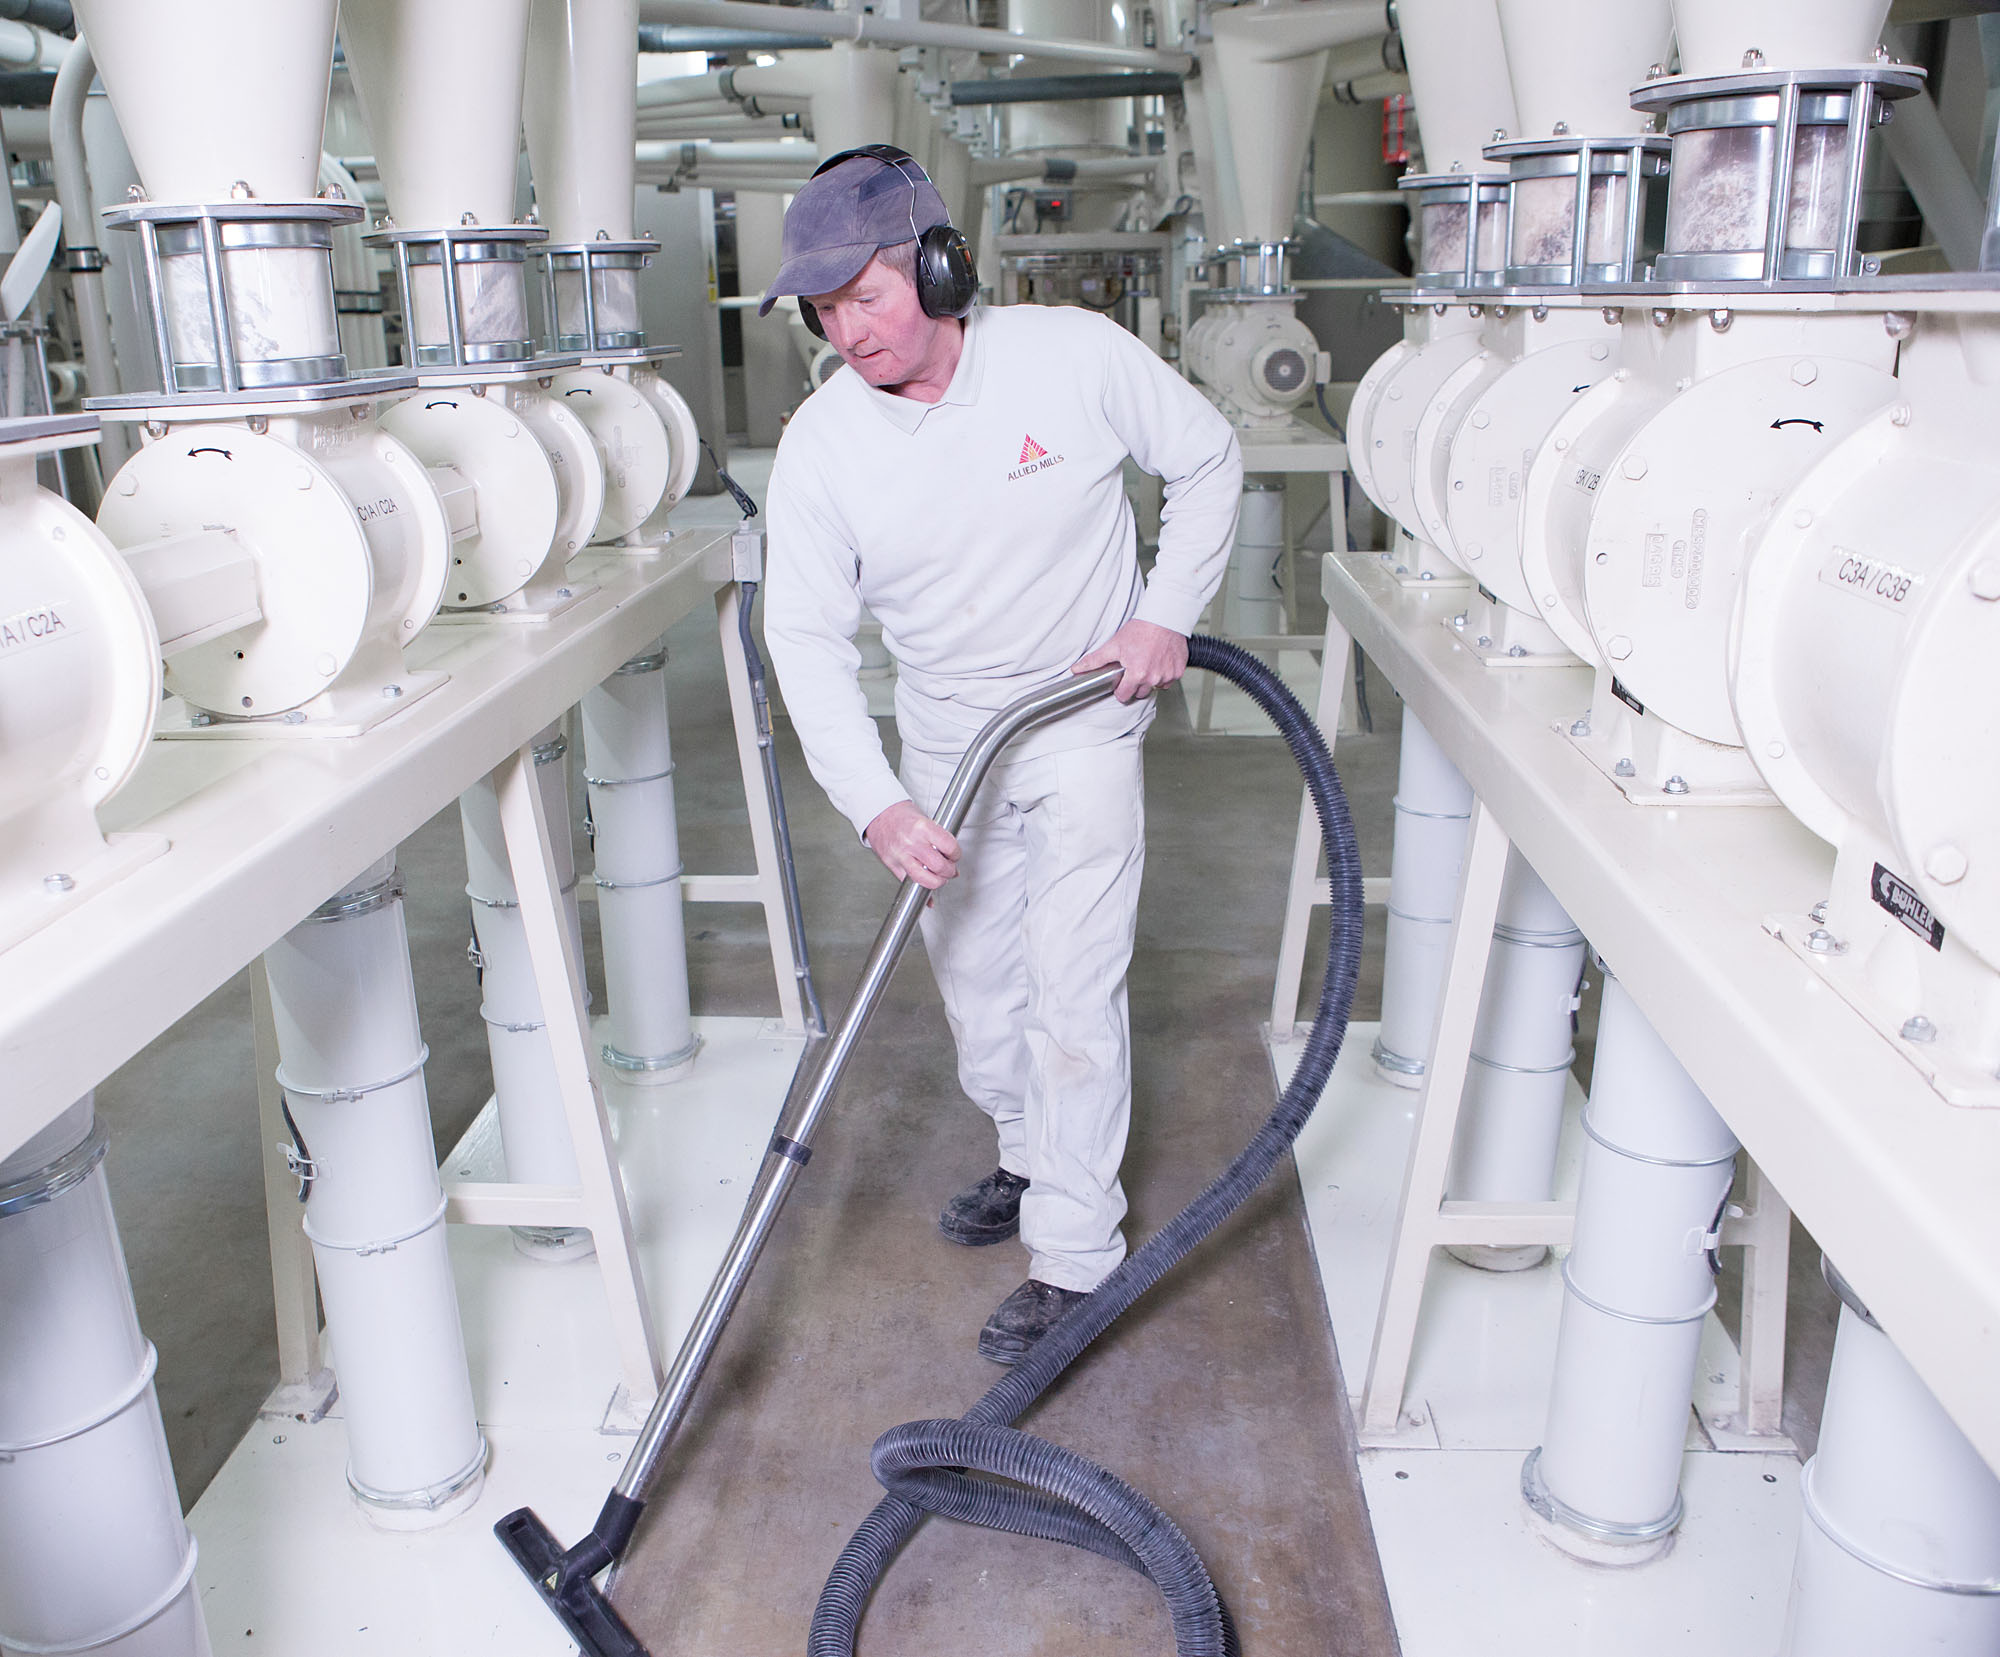 Kingsmill/Allied Bakeries Mill worker using a vacum cleaner